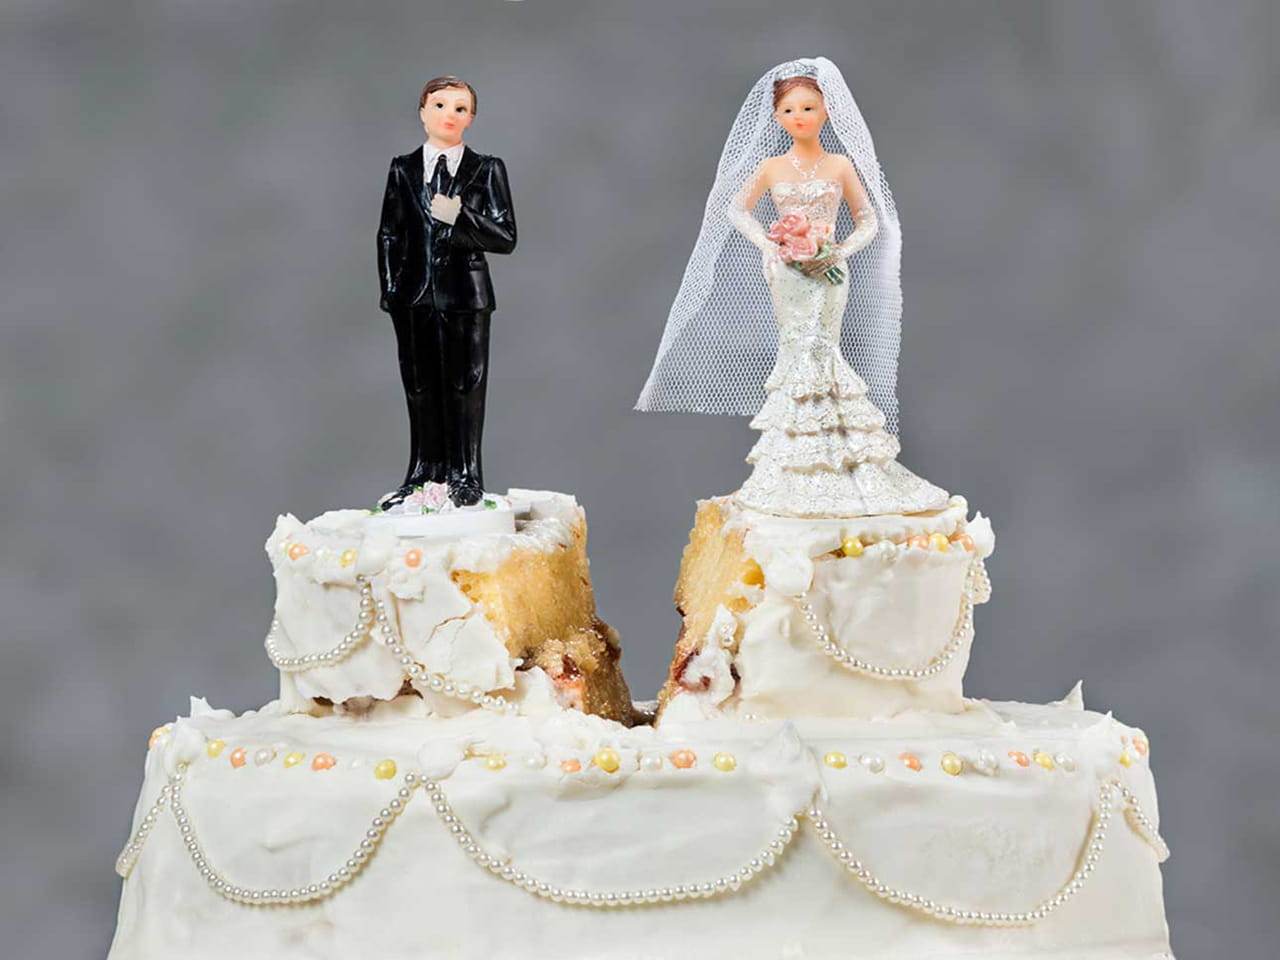 How much does a divorce cost saga wedding cake with bride and groom separated solutioingenieria Images